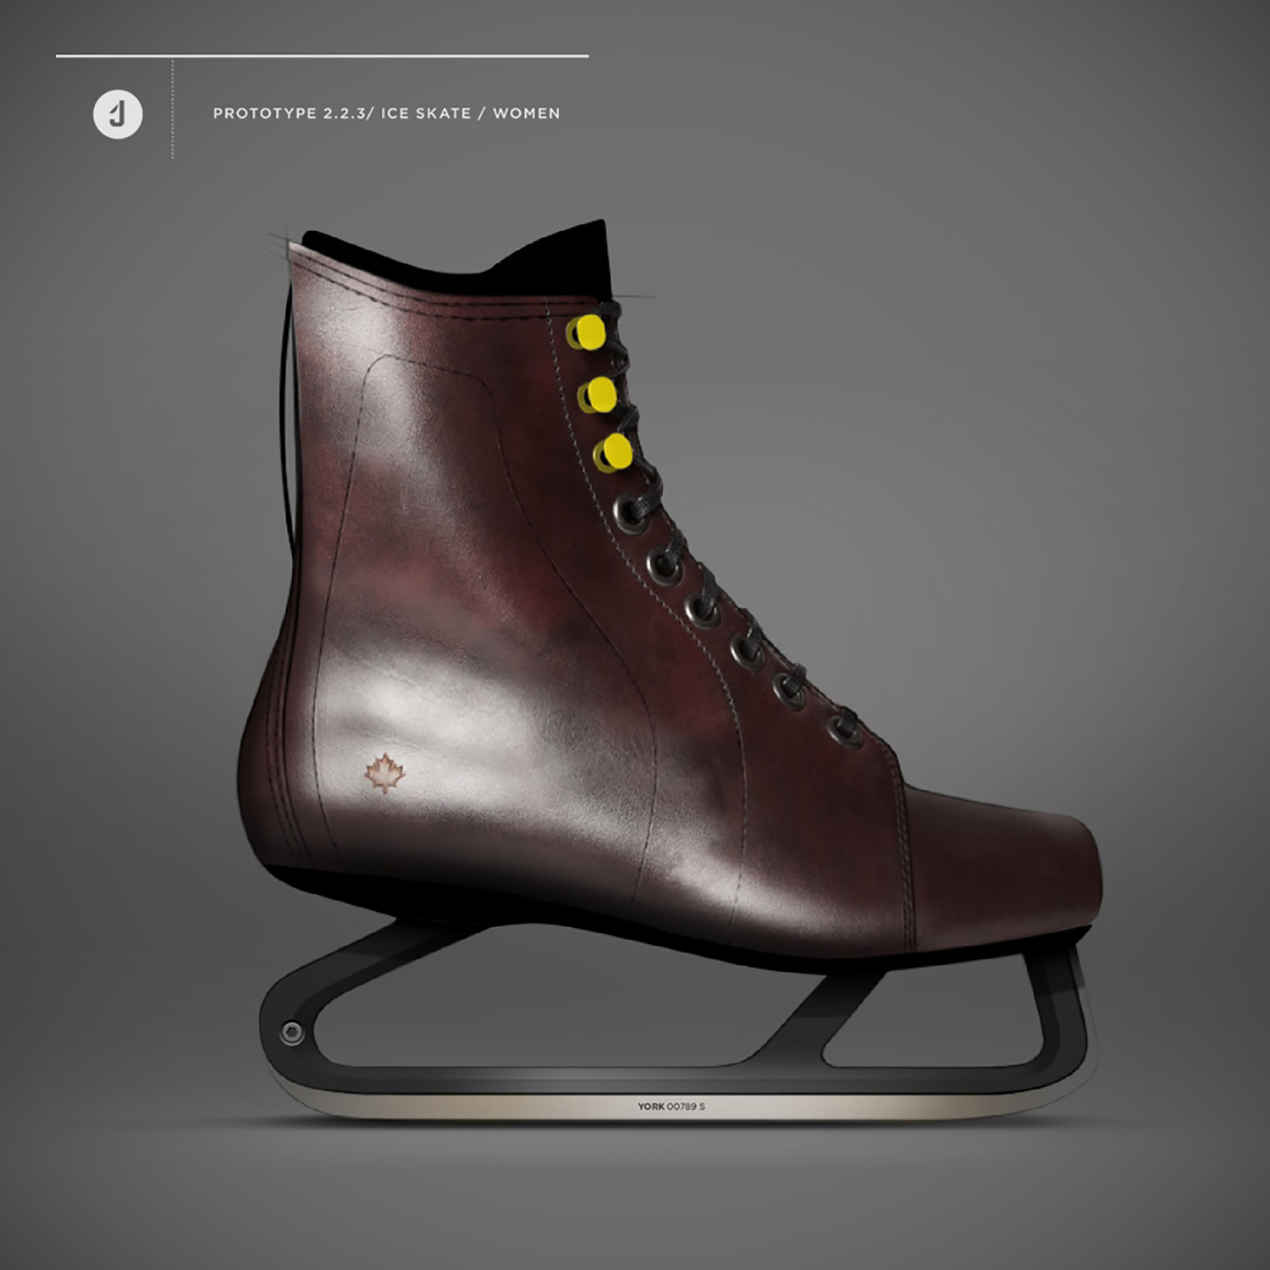 ice skate product design example